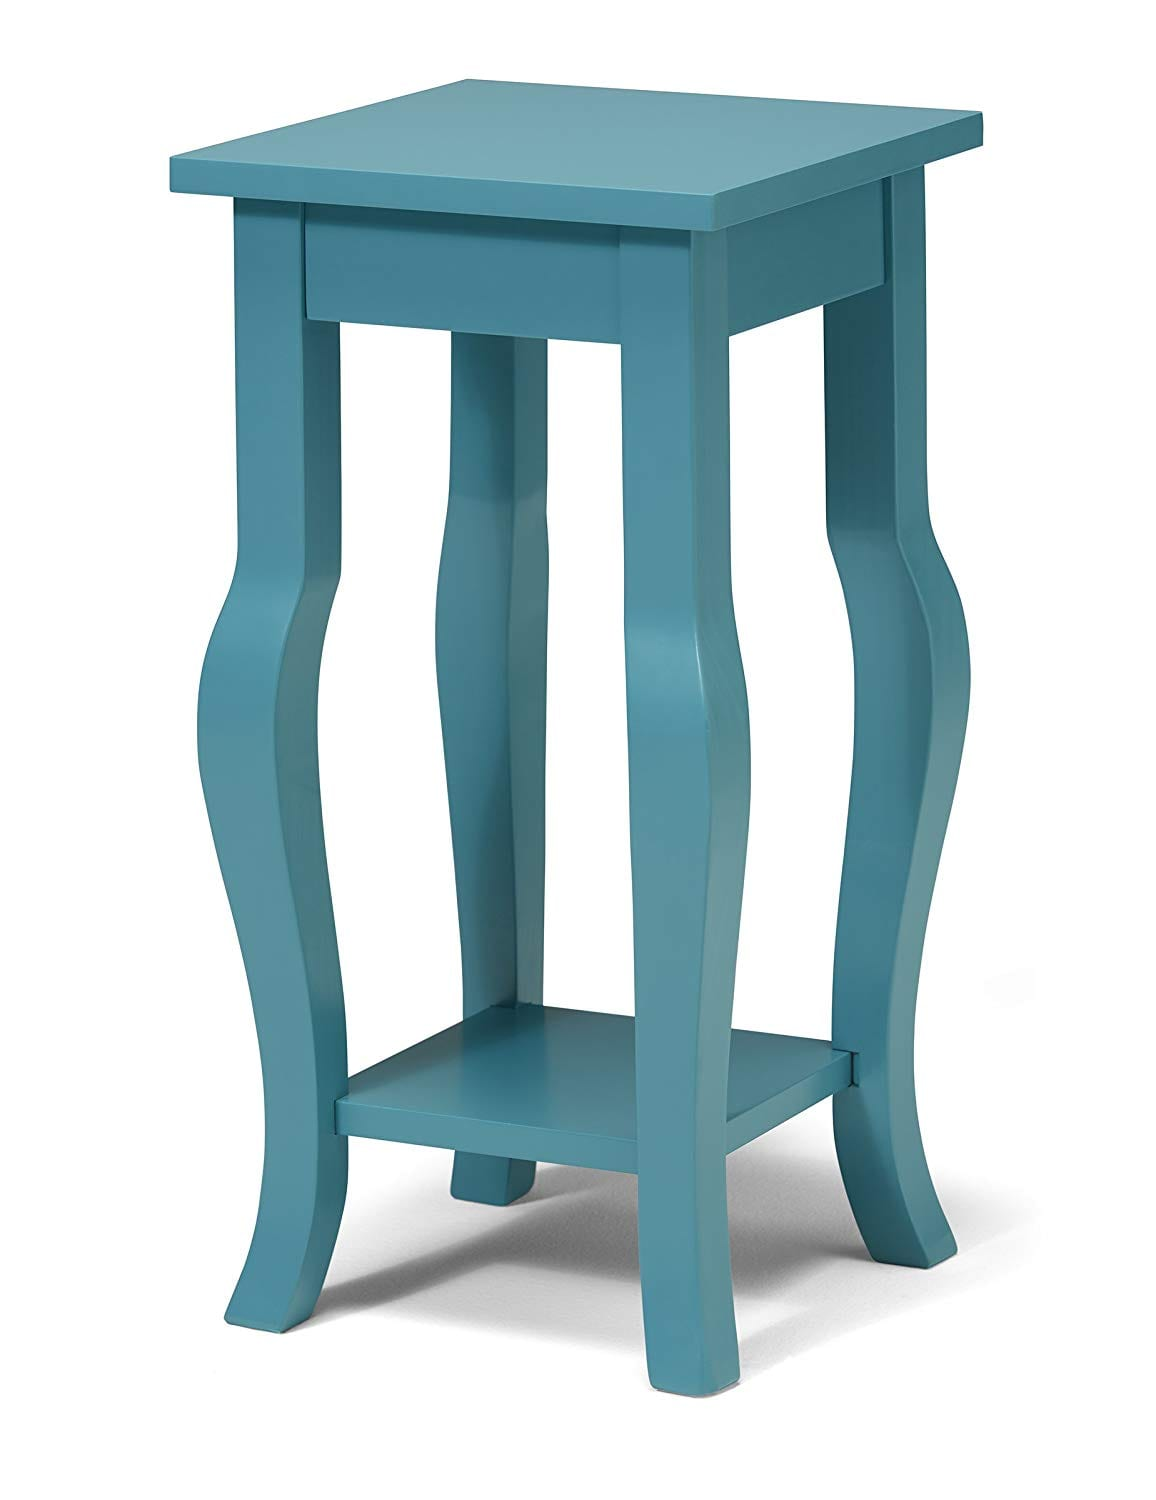 8. Kate and Laurel Lillian Wood Pedestal End Table Curved Legs with Shelf, Teal